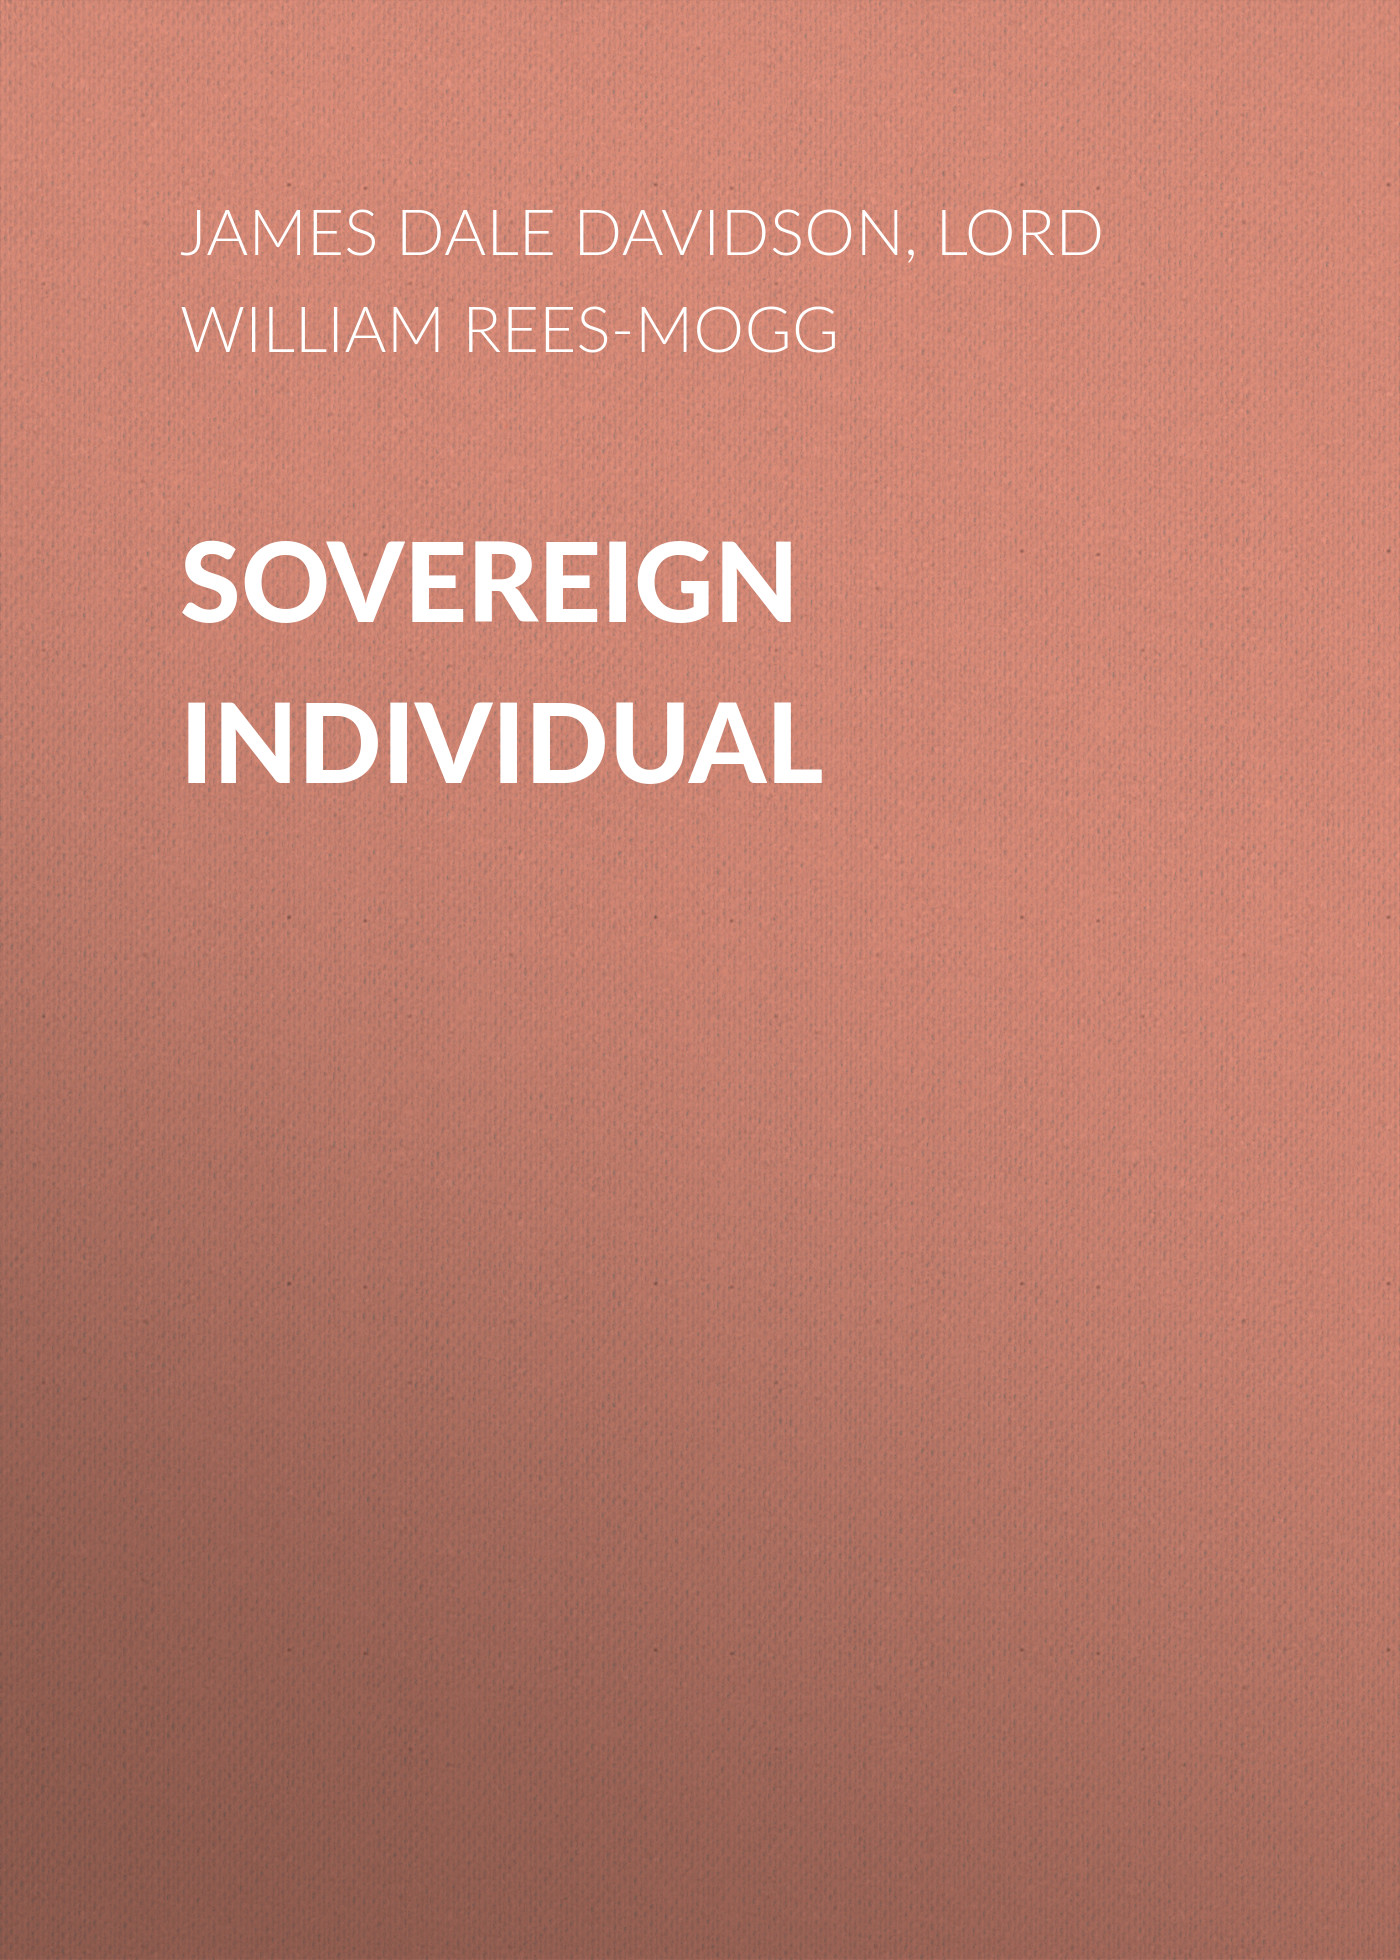 James Dale Davidson Sovereign Individual post sovereign constitution making